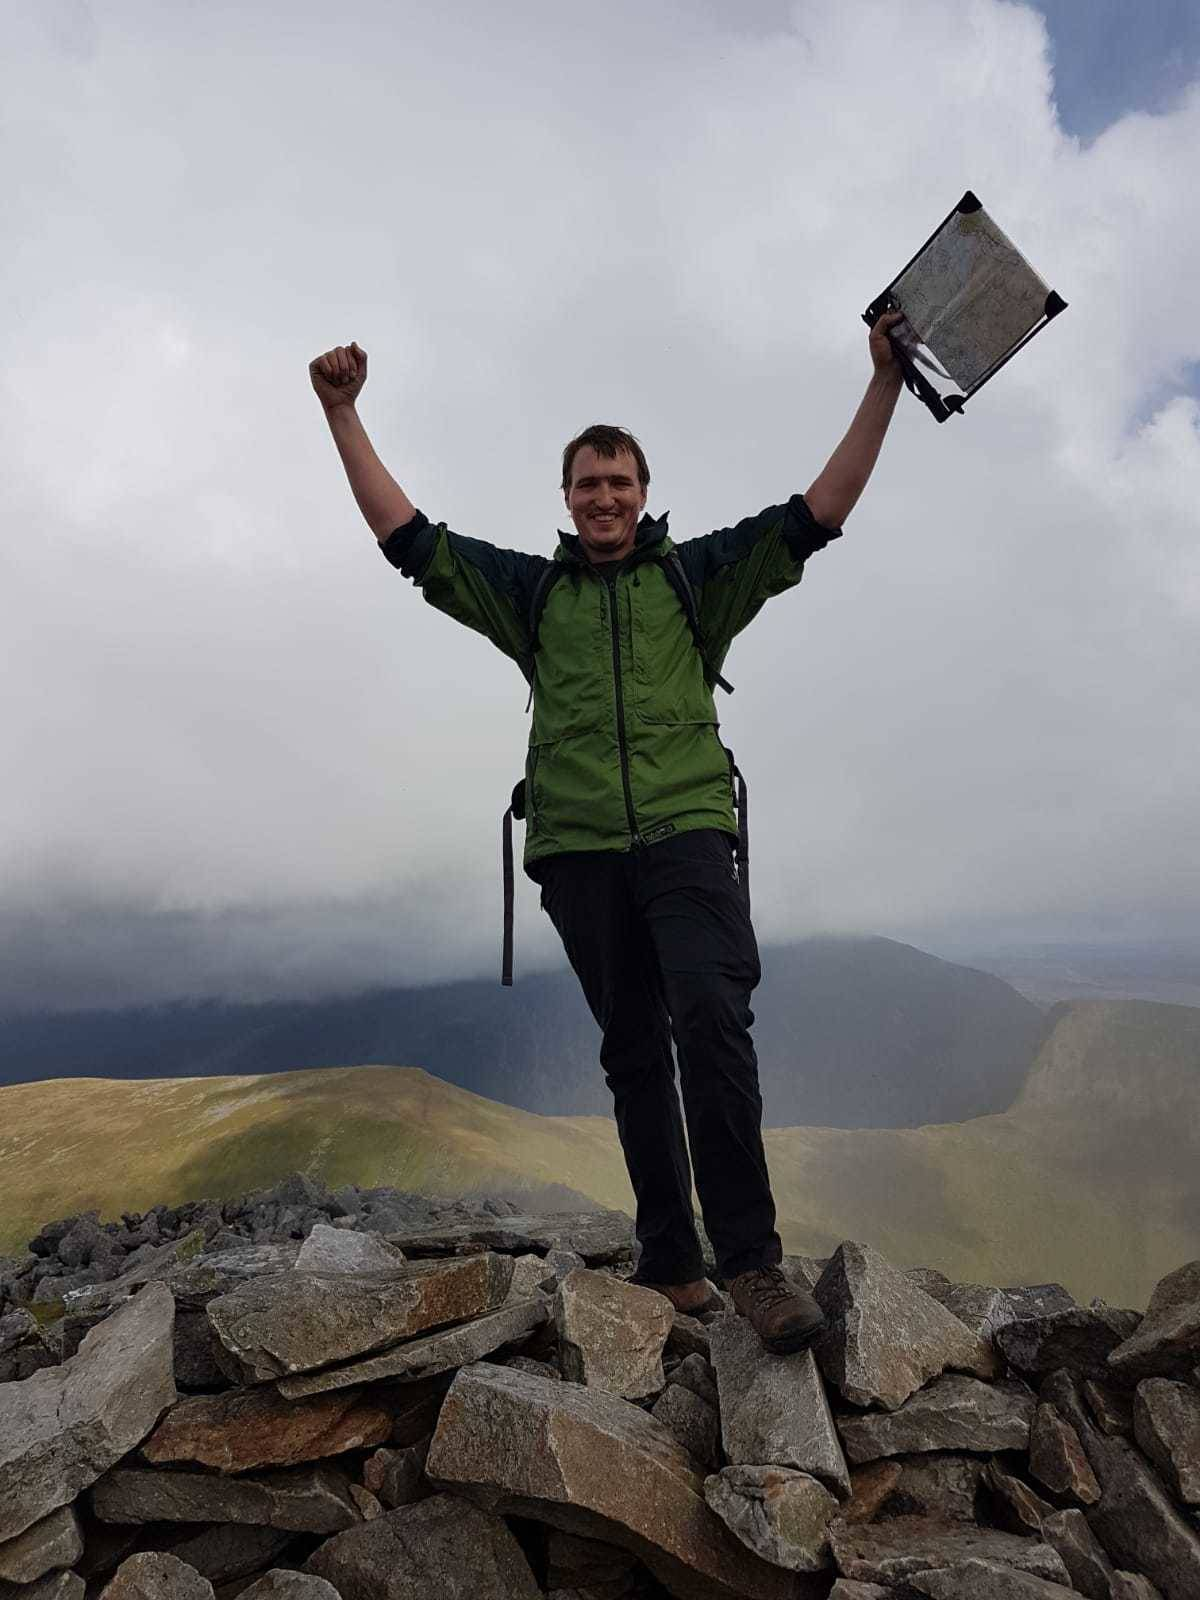 A photograph of a man standing at the top of a mountain with a map in his hand